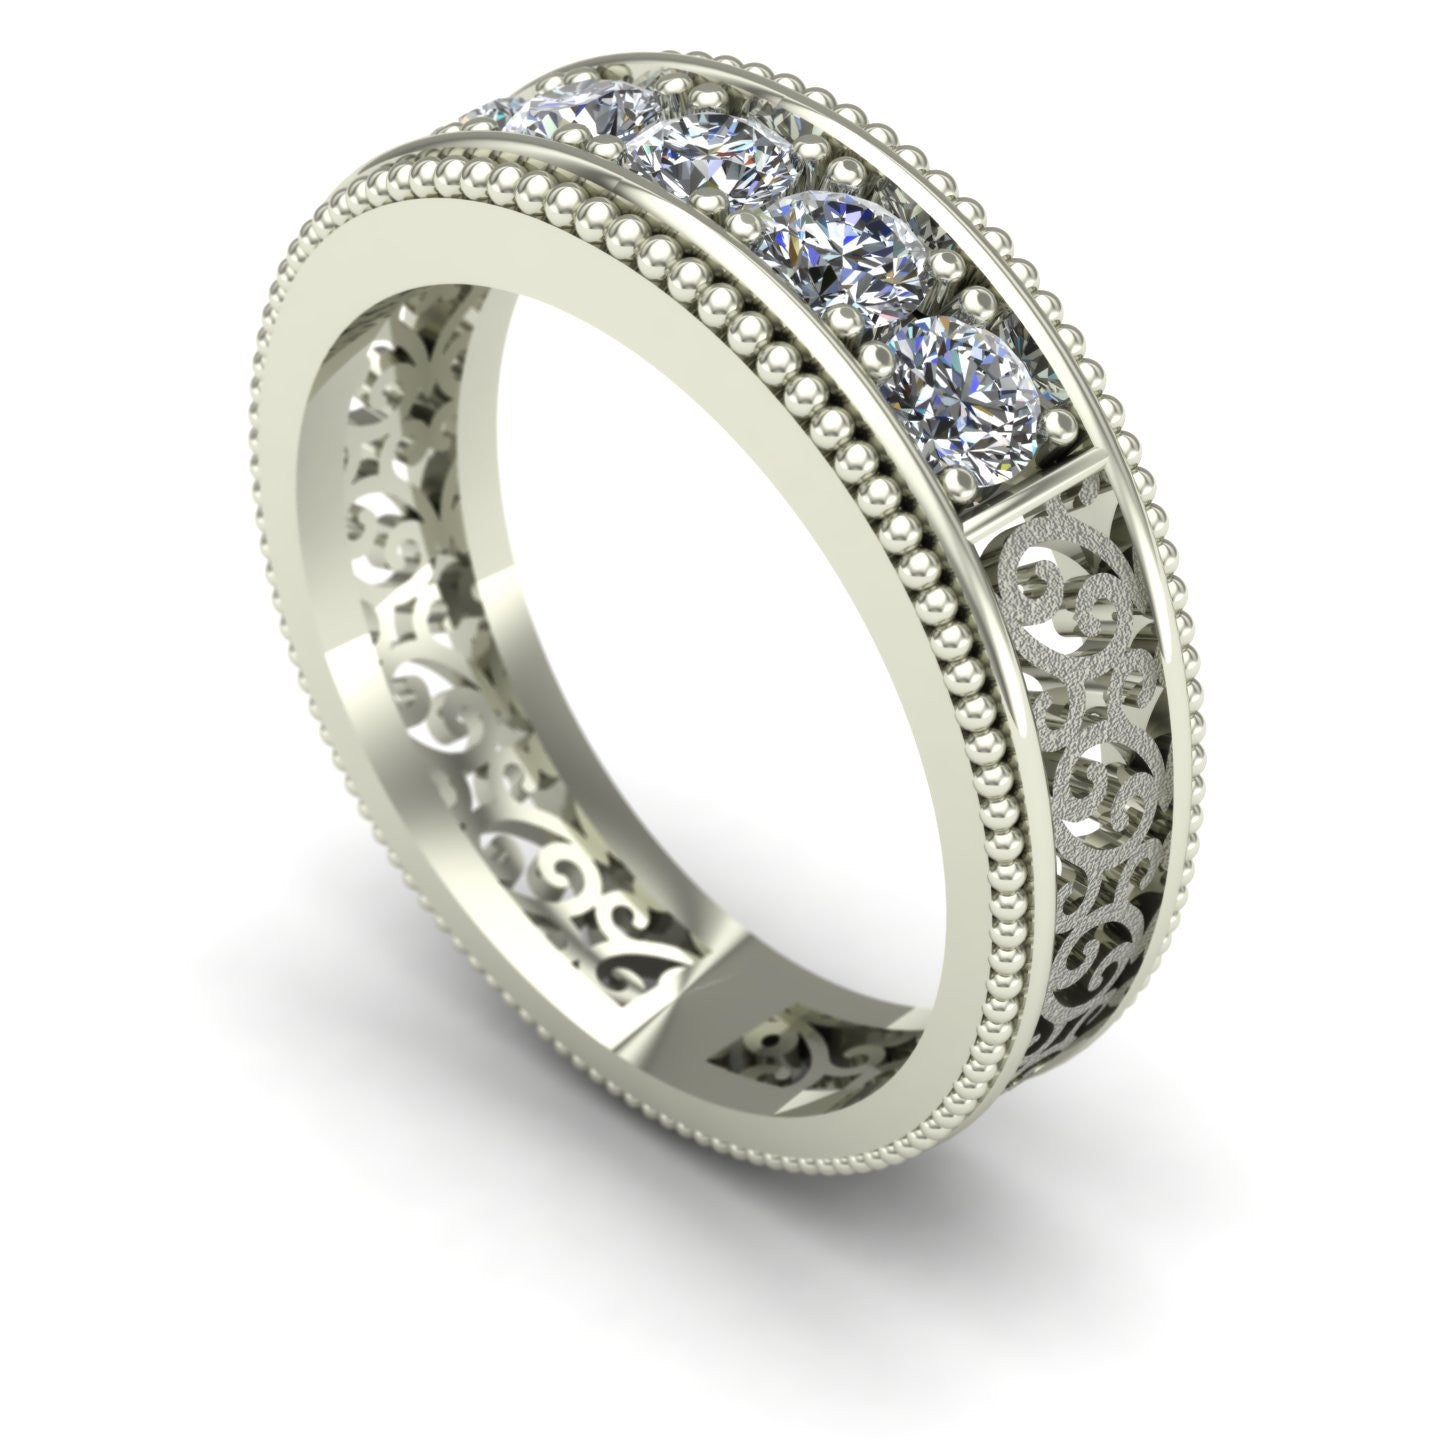 Sandblasted Scroll Filigree Diamond Wedding Band in 14k White Gold